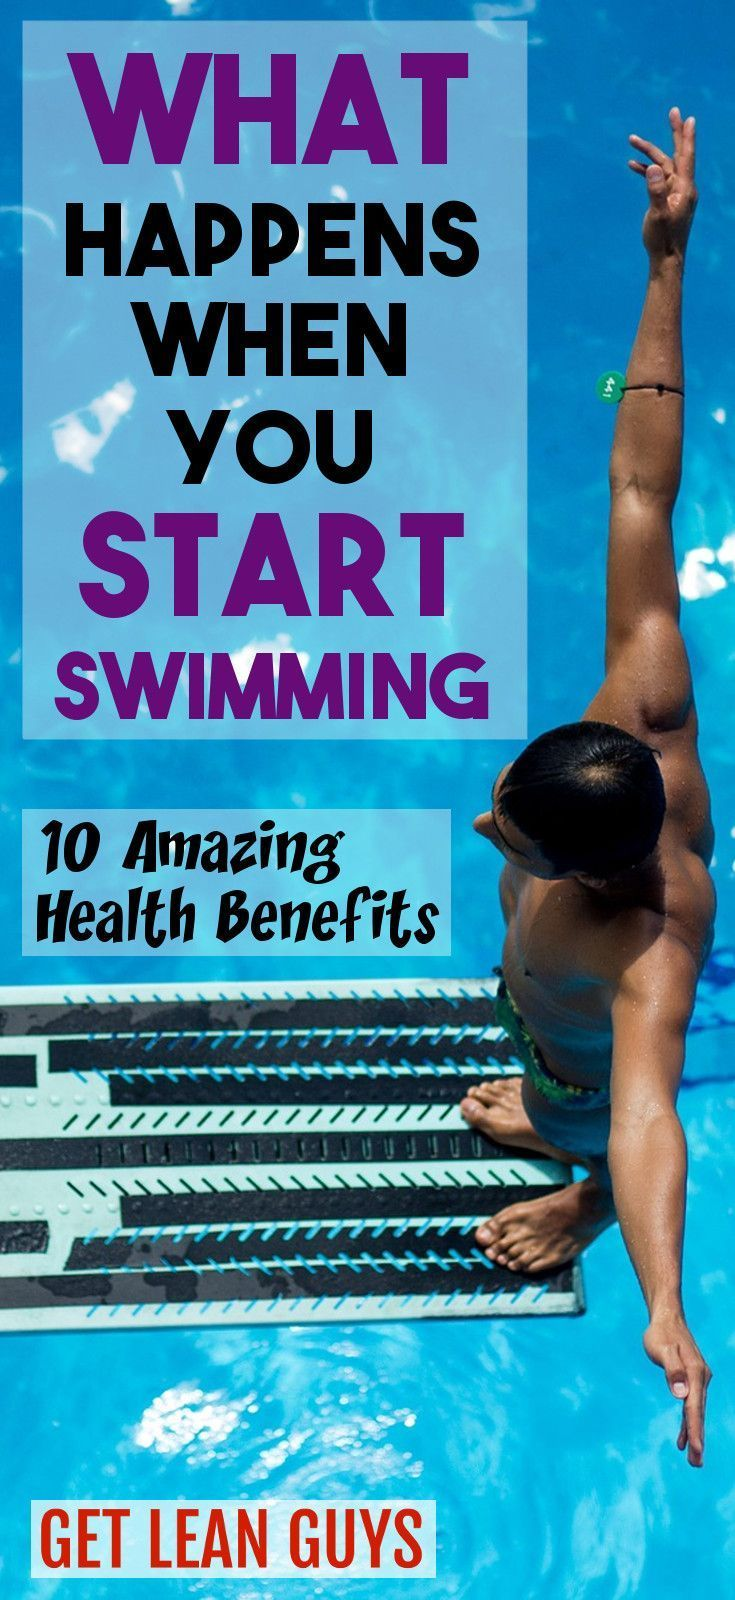 What Happens When You Start Swimming 10 Amazing Health Benefits